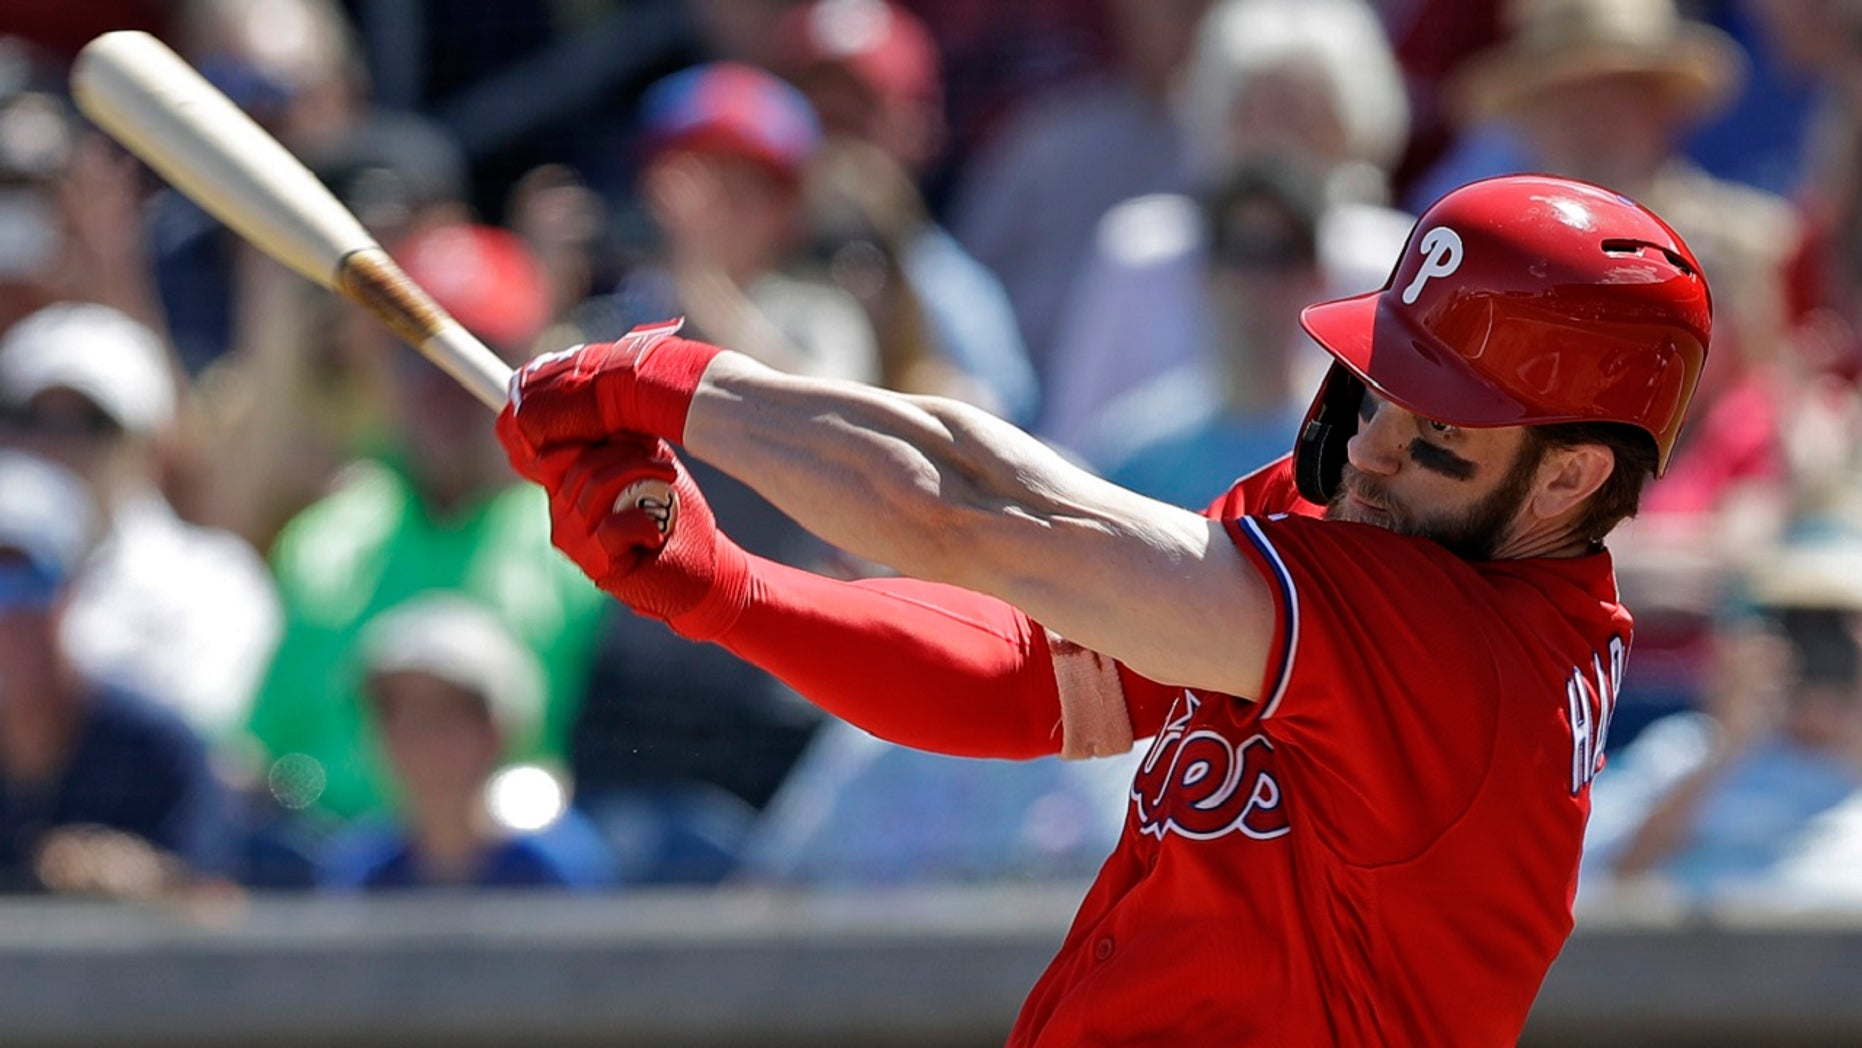 Bryce Harper Injury: Phillies Star Leave Game After Getting Hit By Pitch